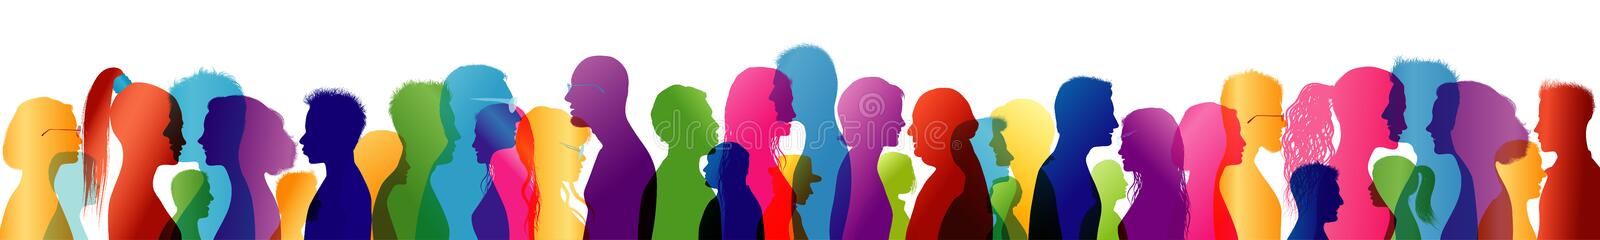 Crowd talking. Group of people talking. Speak. To communicate. Colored silhouette profiles stock photos